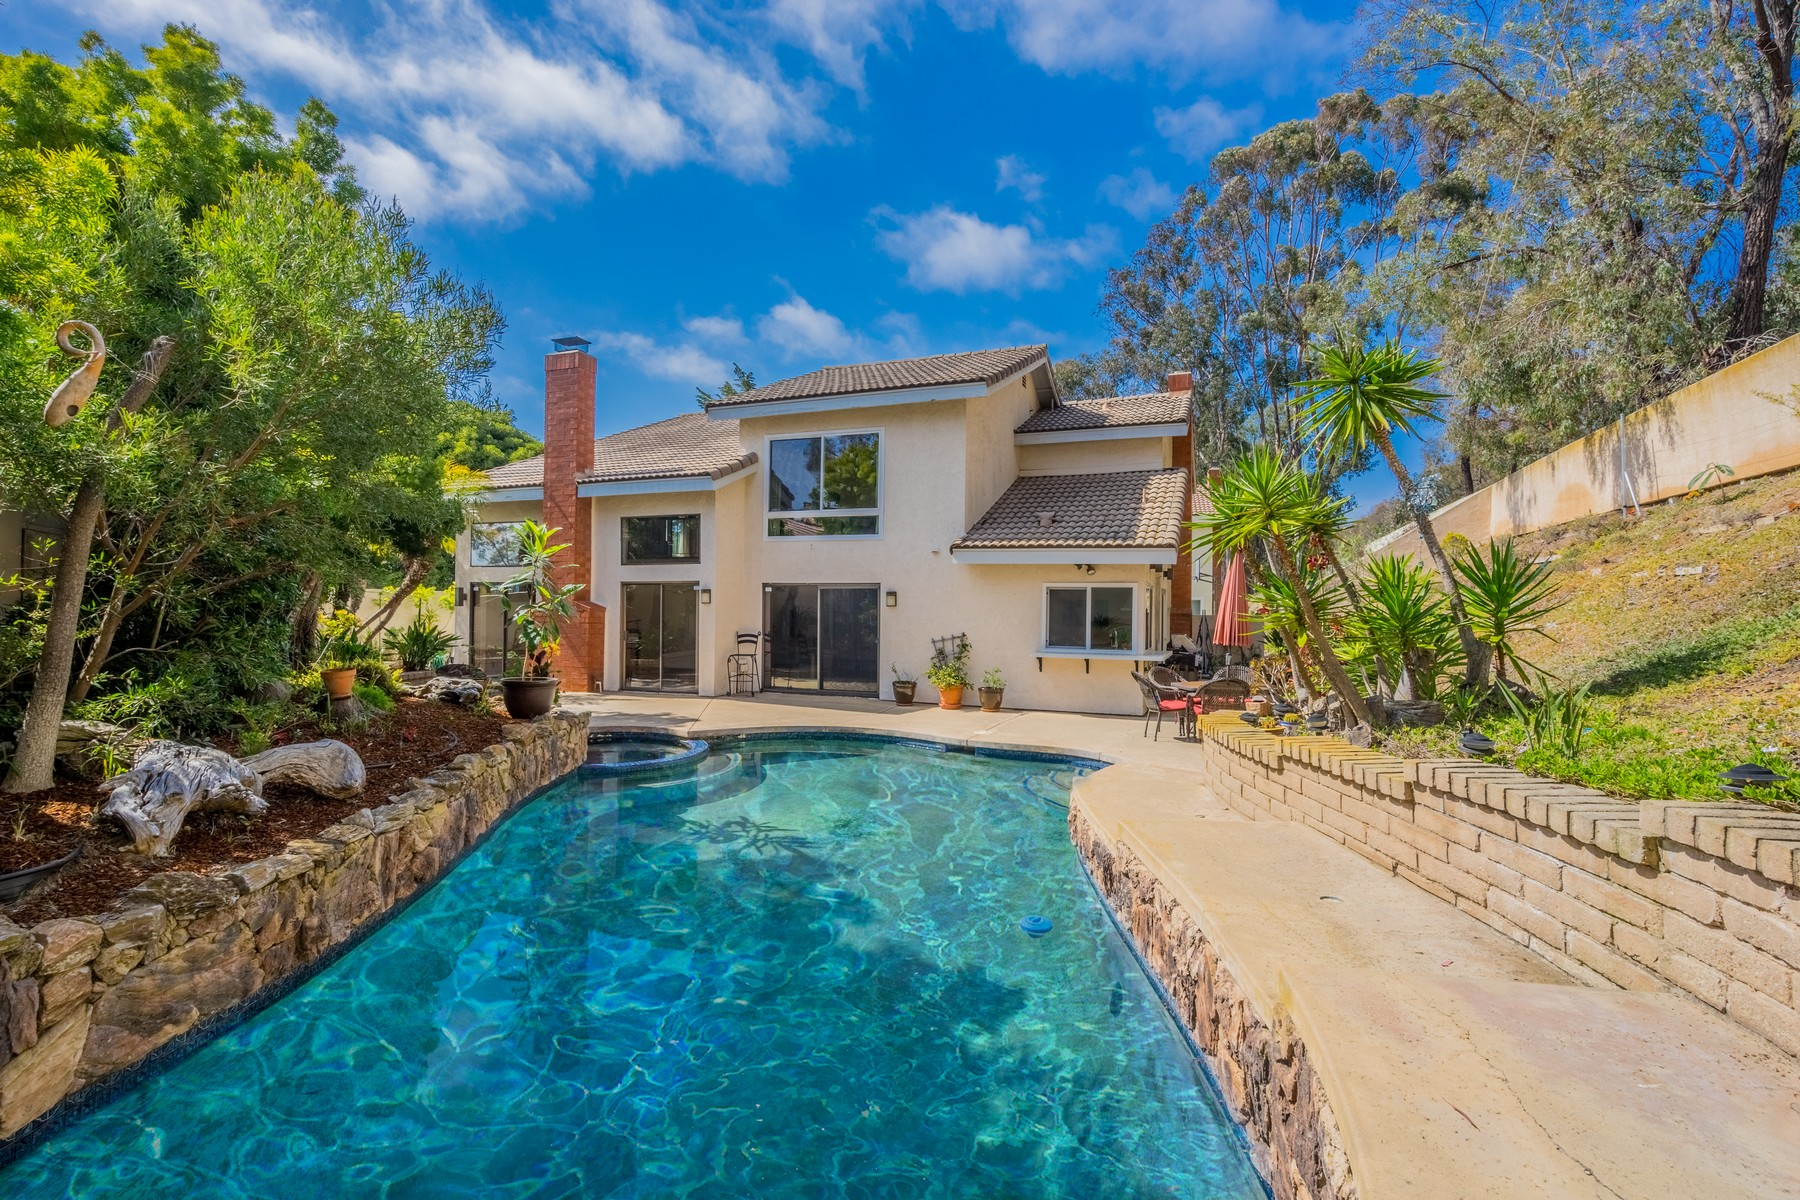 Single Family Home for Sale at 8317 Caminito Helecho La Jolla, California 92037 United States